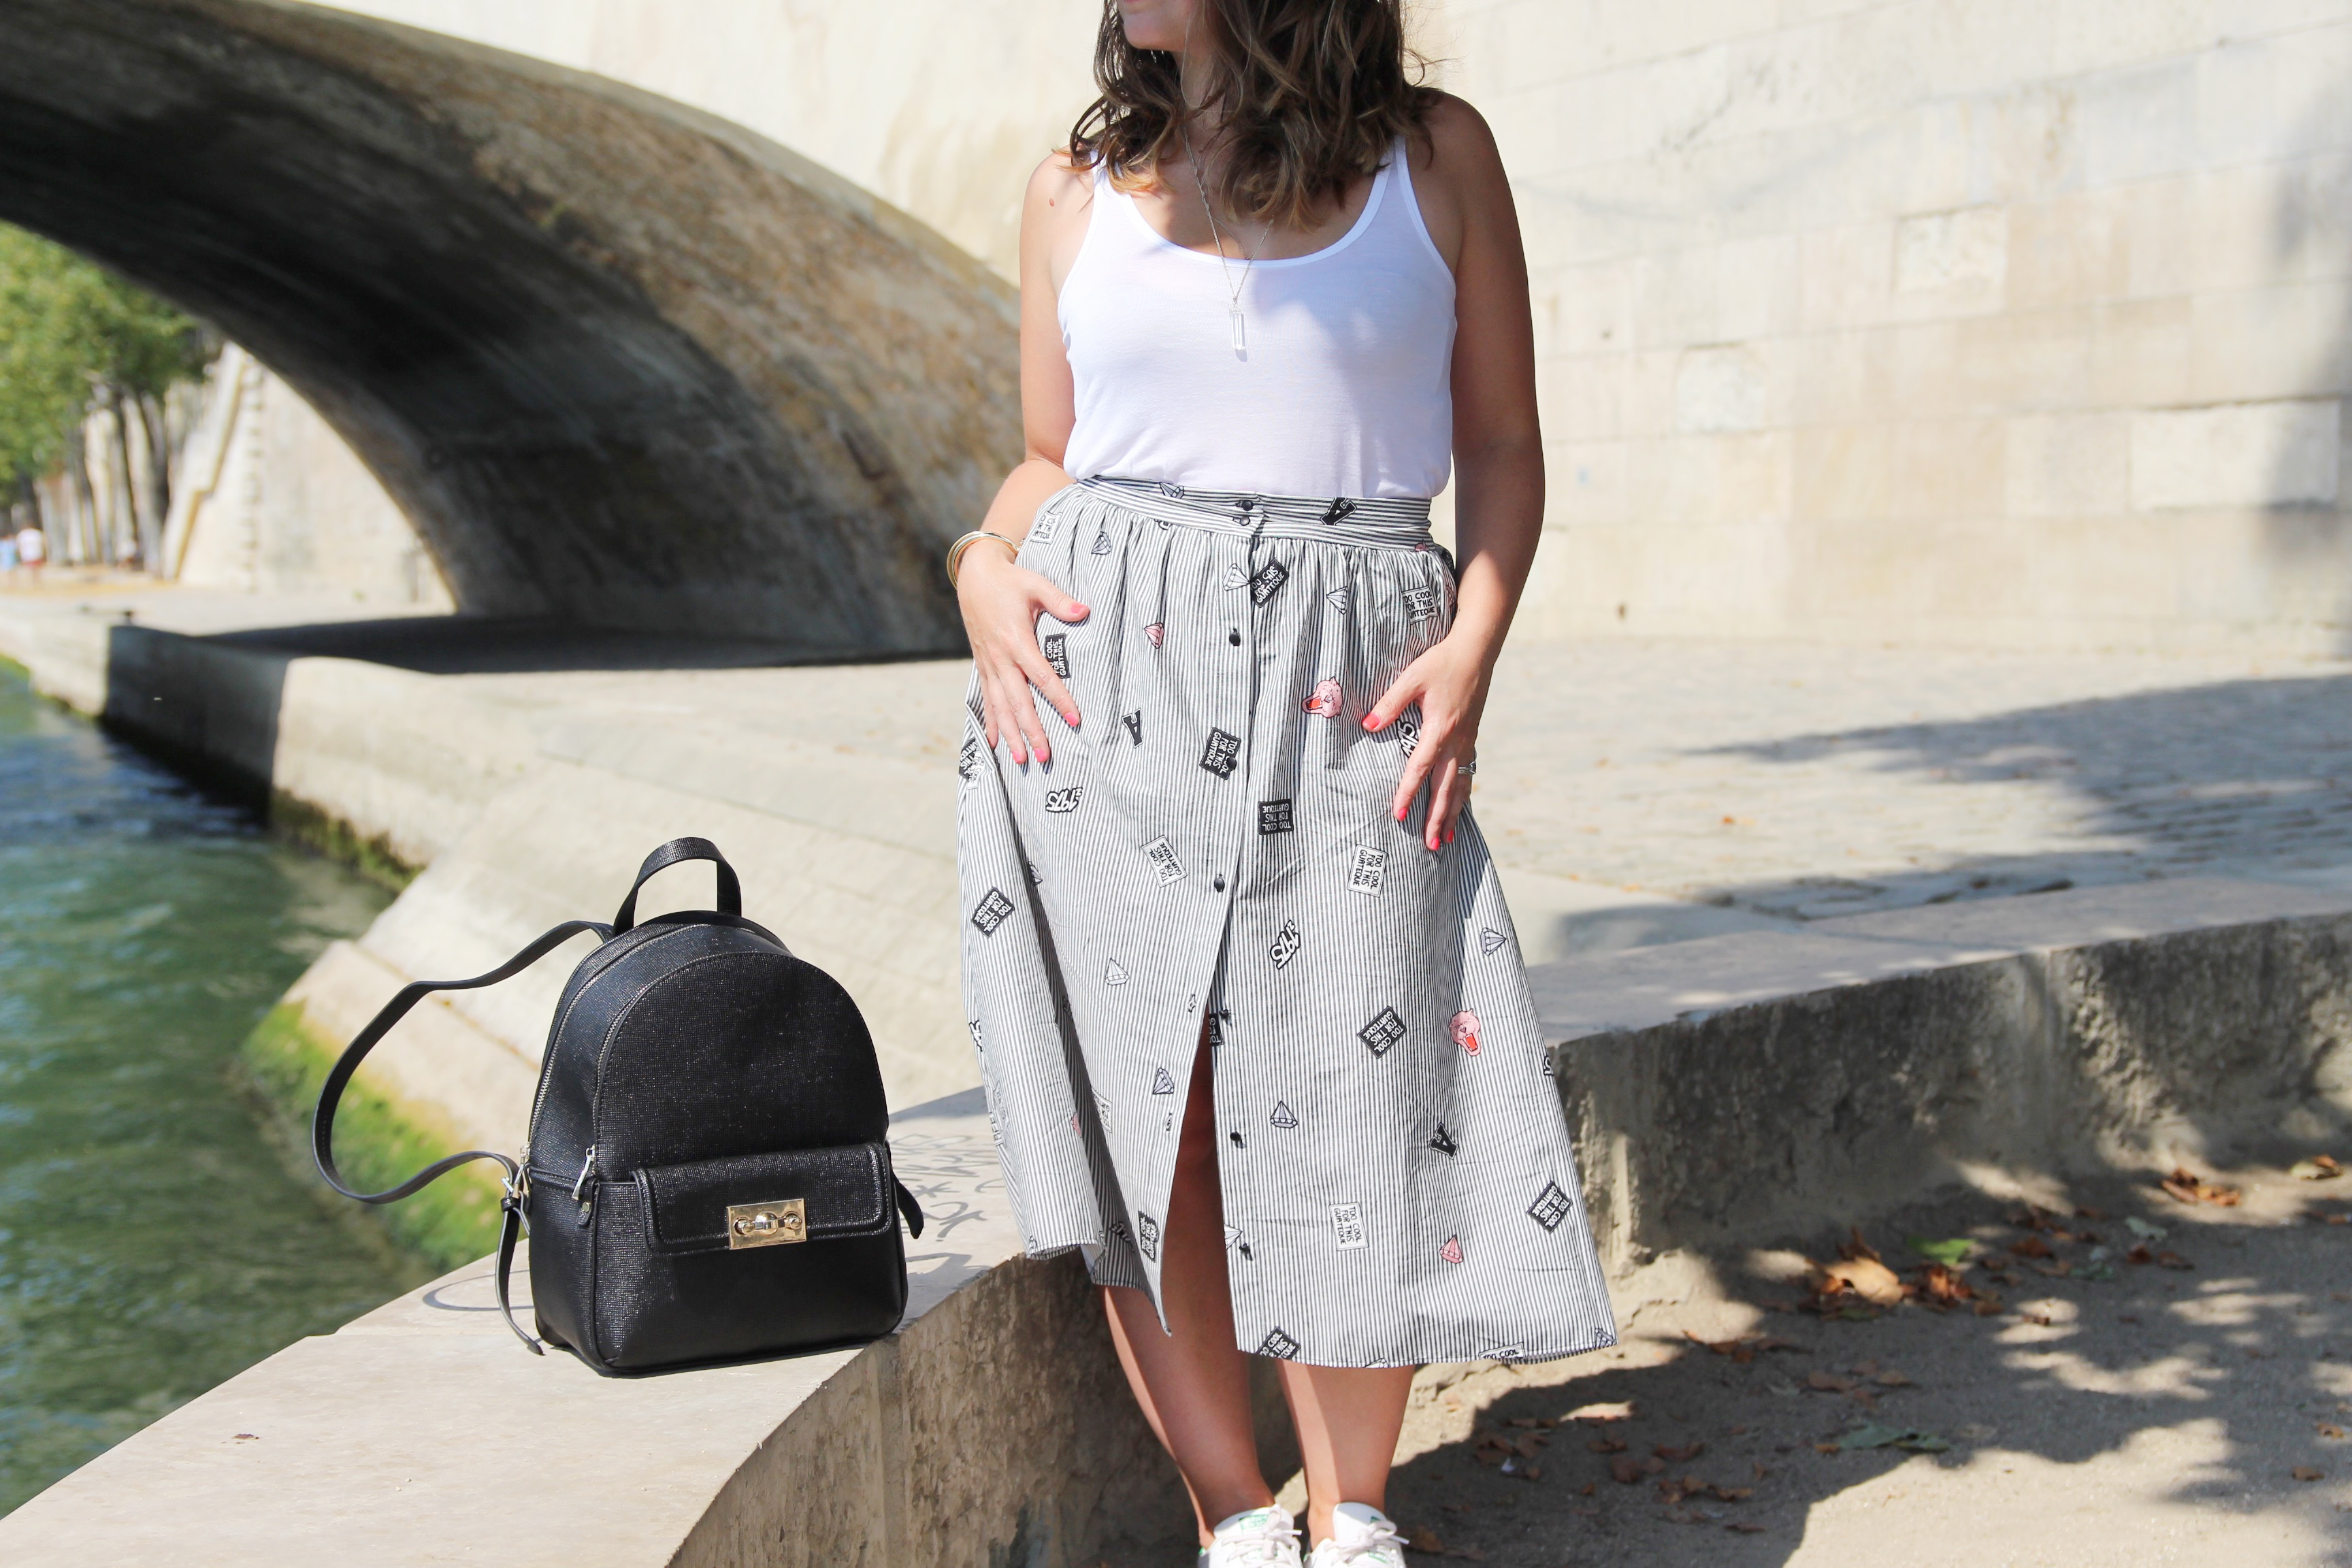 lookbook-oldschool-strip-skirt-fahionblogger-influencer-seralynepointcom-paris-bergesdeseine-4094